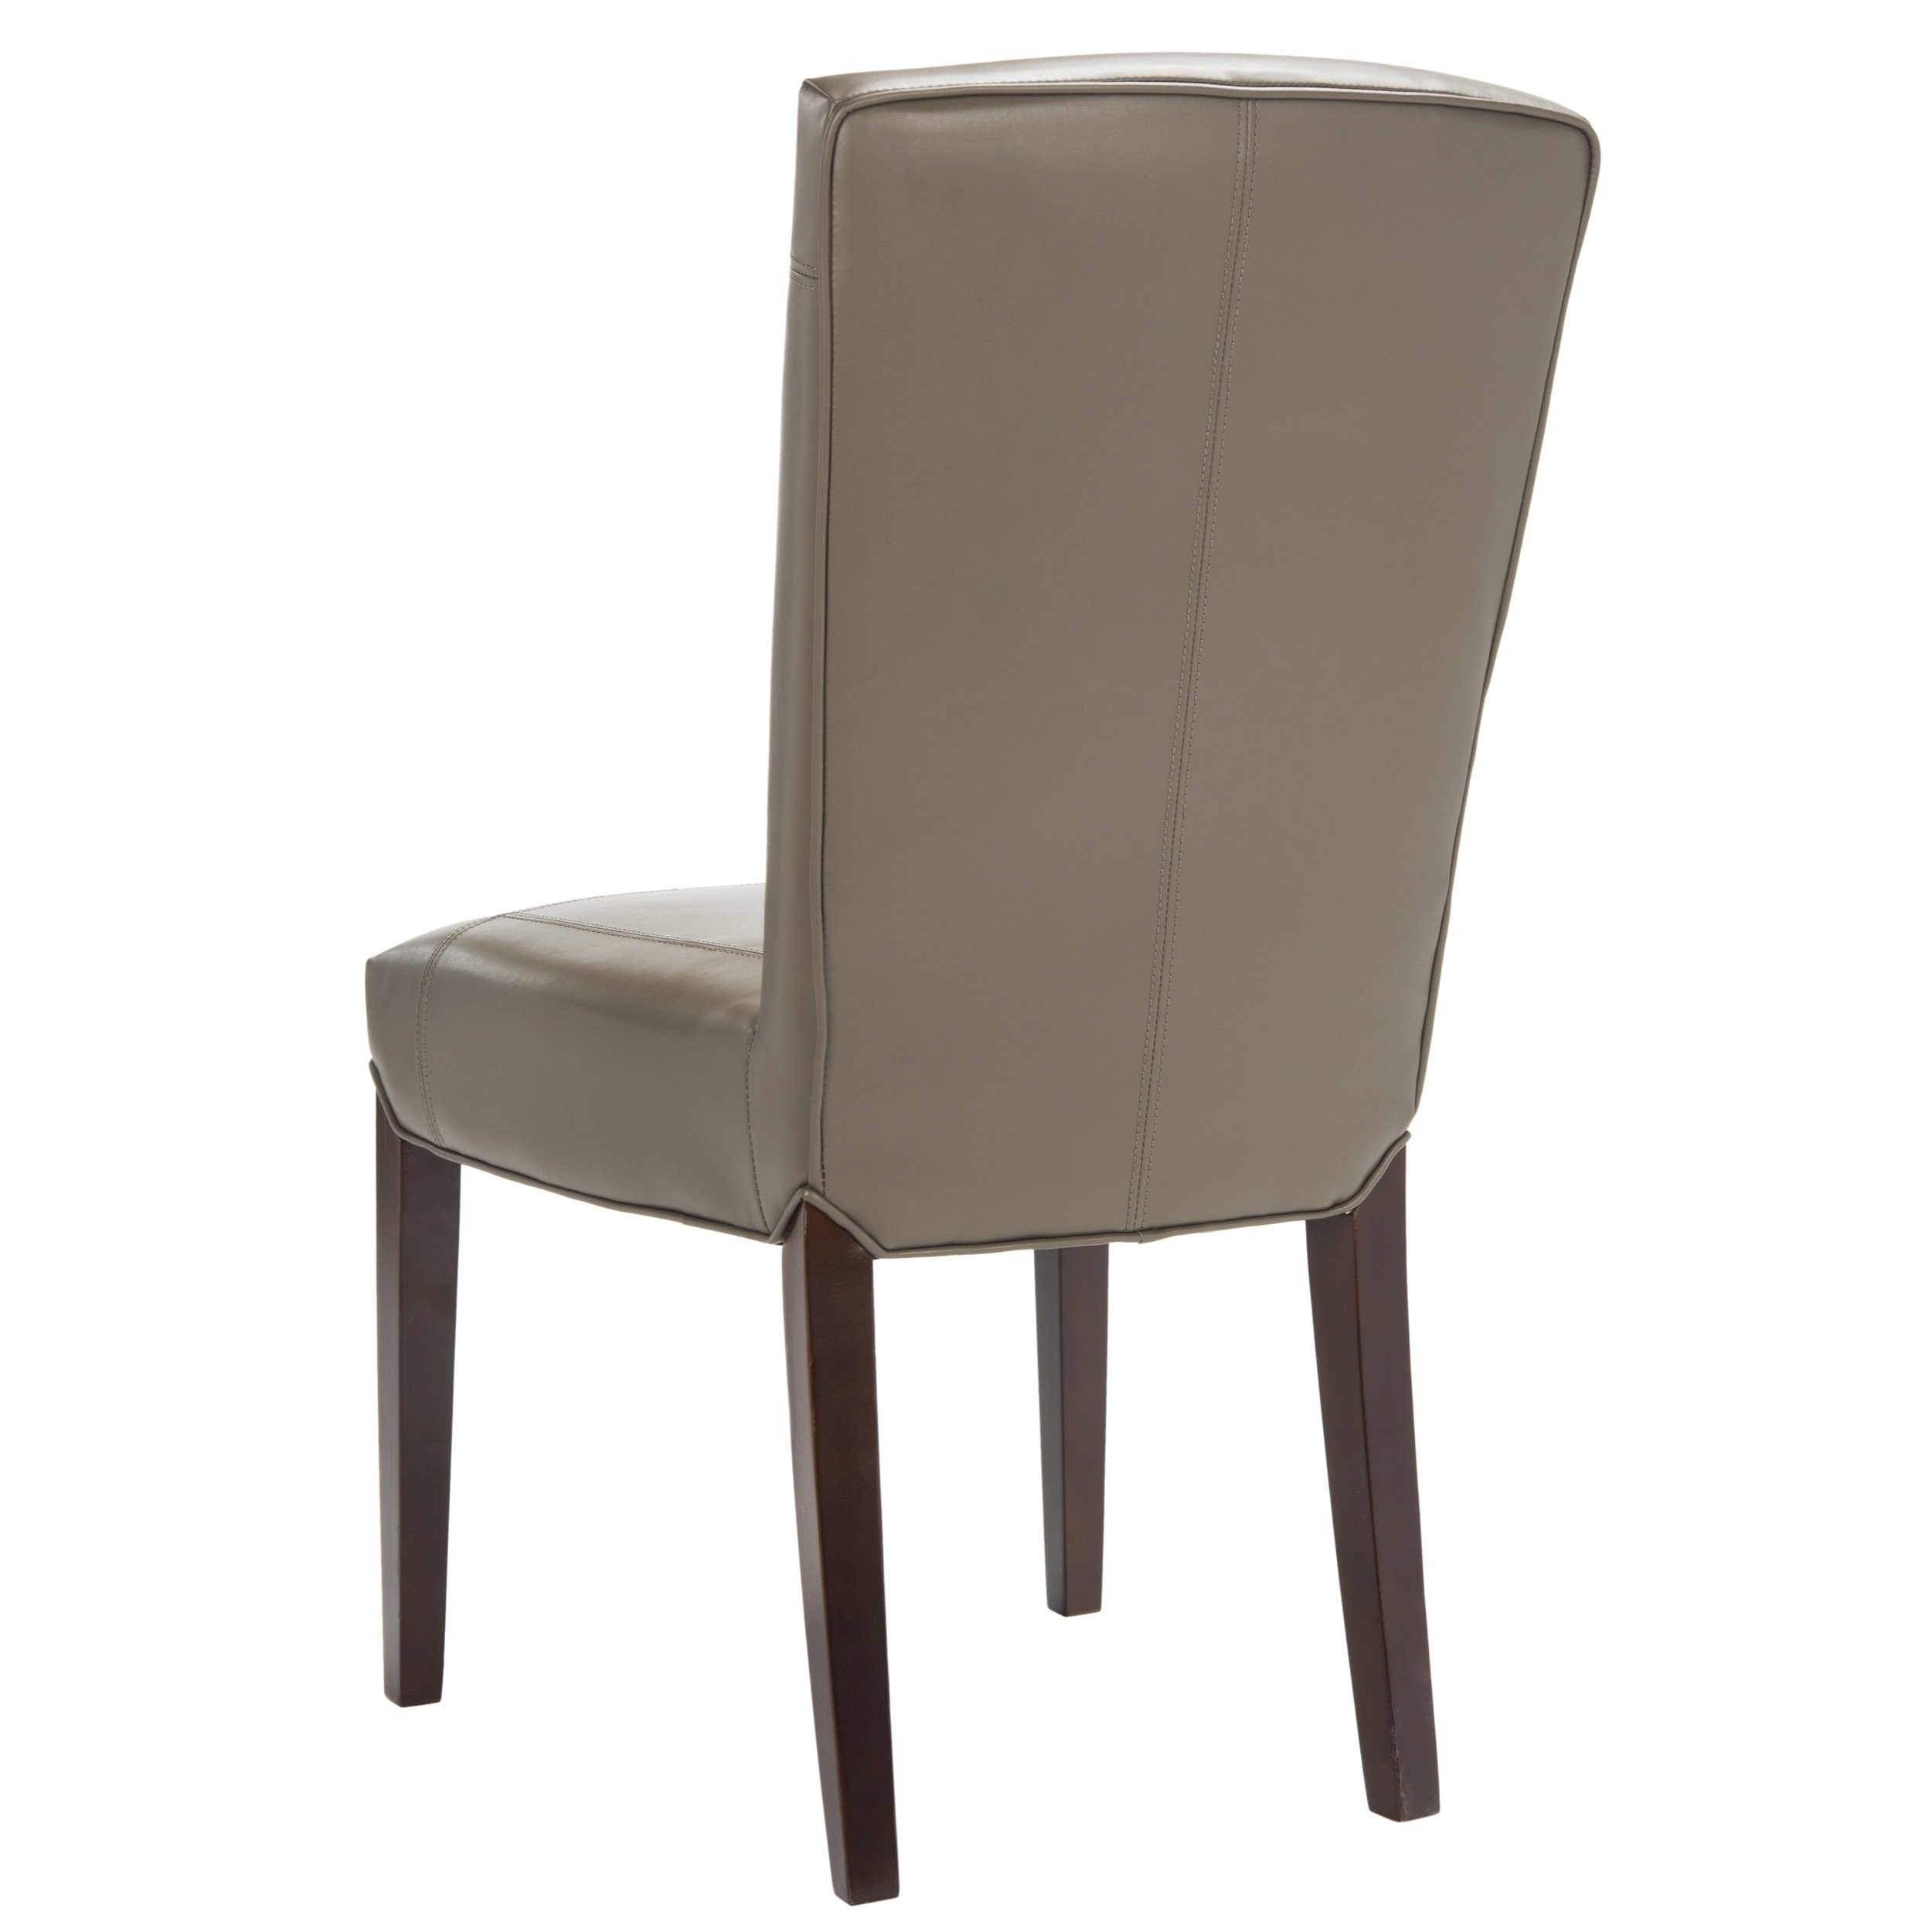 Clay Side Chairs With Regard To Latest Shop Safavieh Parsons Dining Bowery Brown Clay Leather Dining Chairs (#5 of 20)